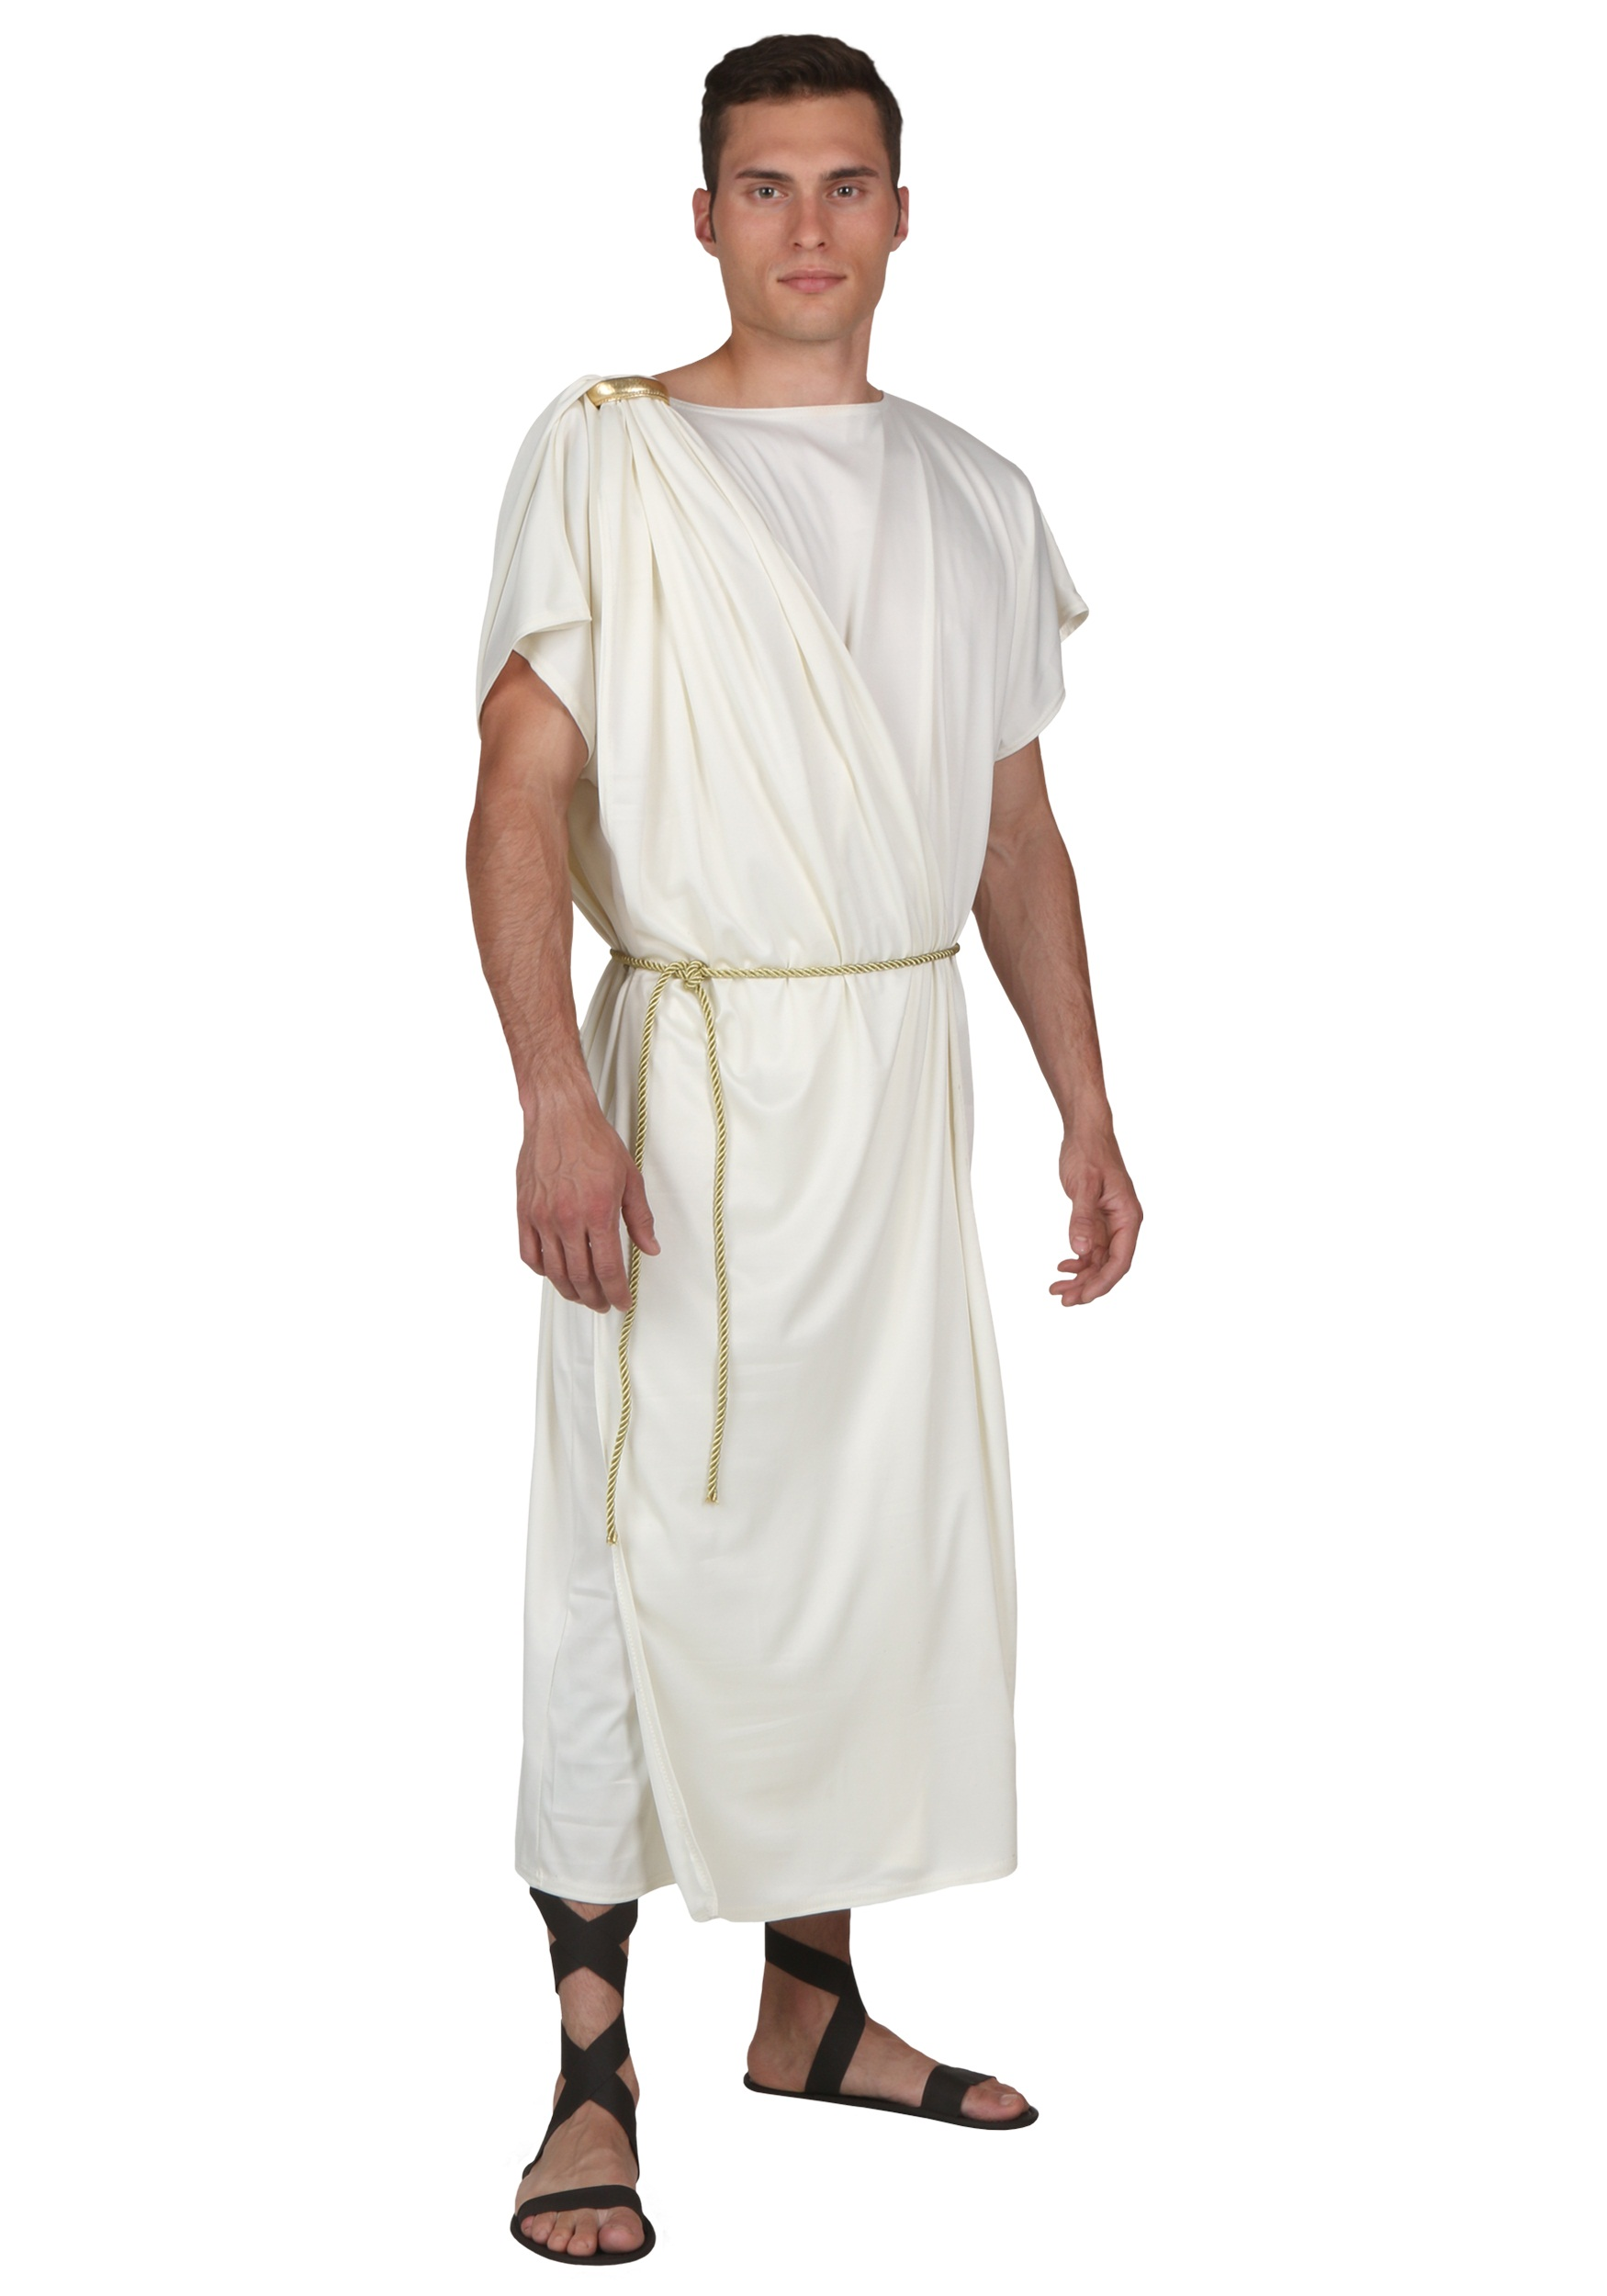 Plus Size Men's Toga